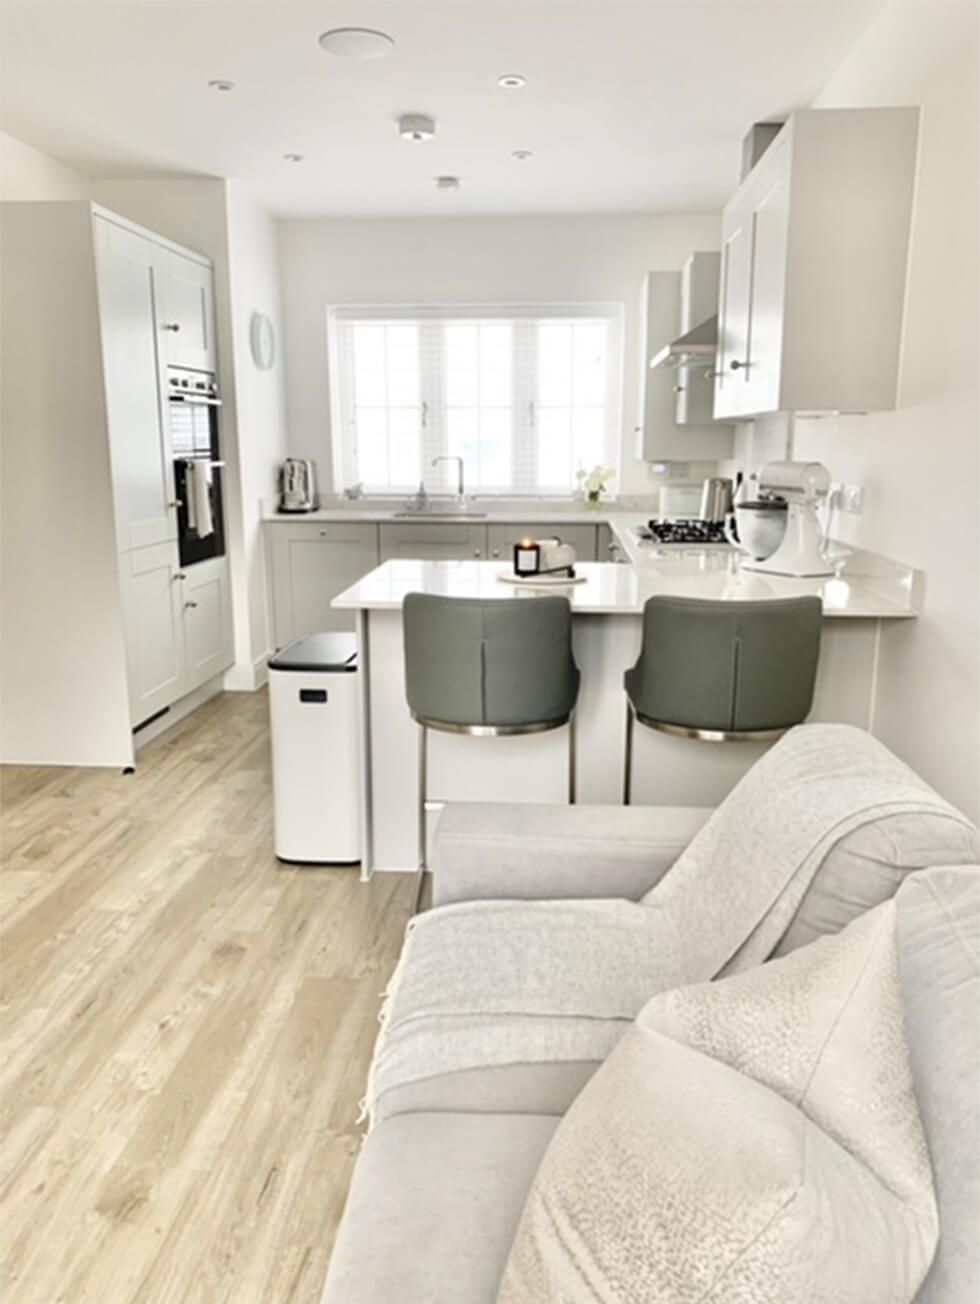 Modern all-white kitchen with a breakfast island, bar stools and sofa next to it